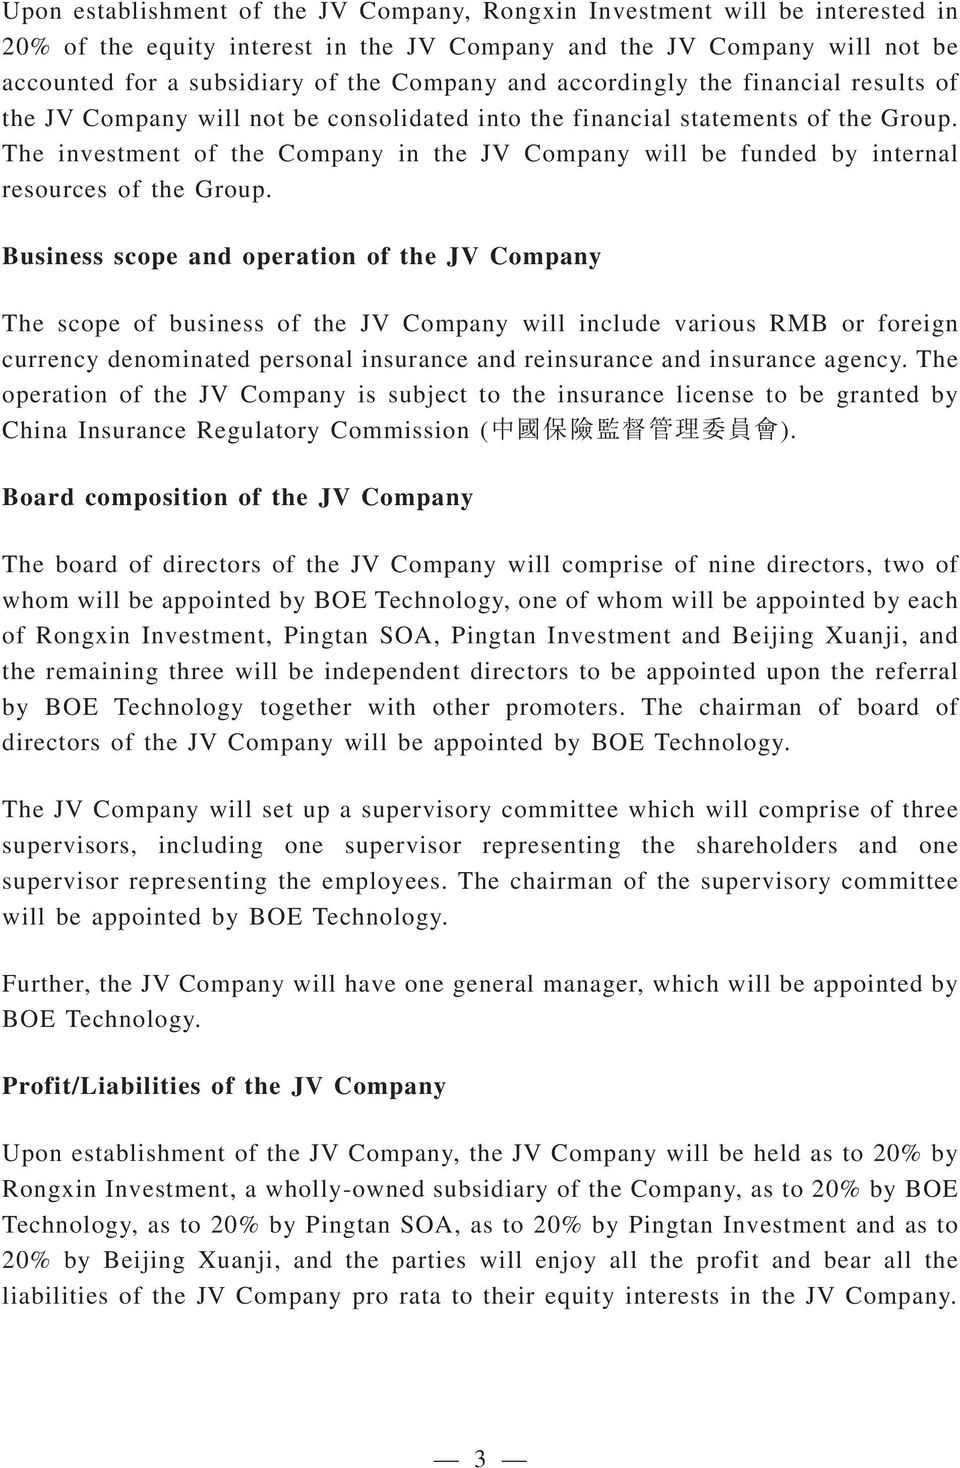 The investment of the Company in the JV Company will be funded by internal resources of the Group.